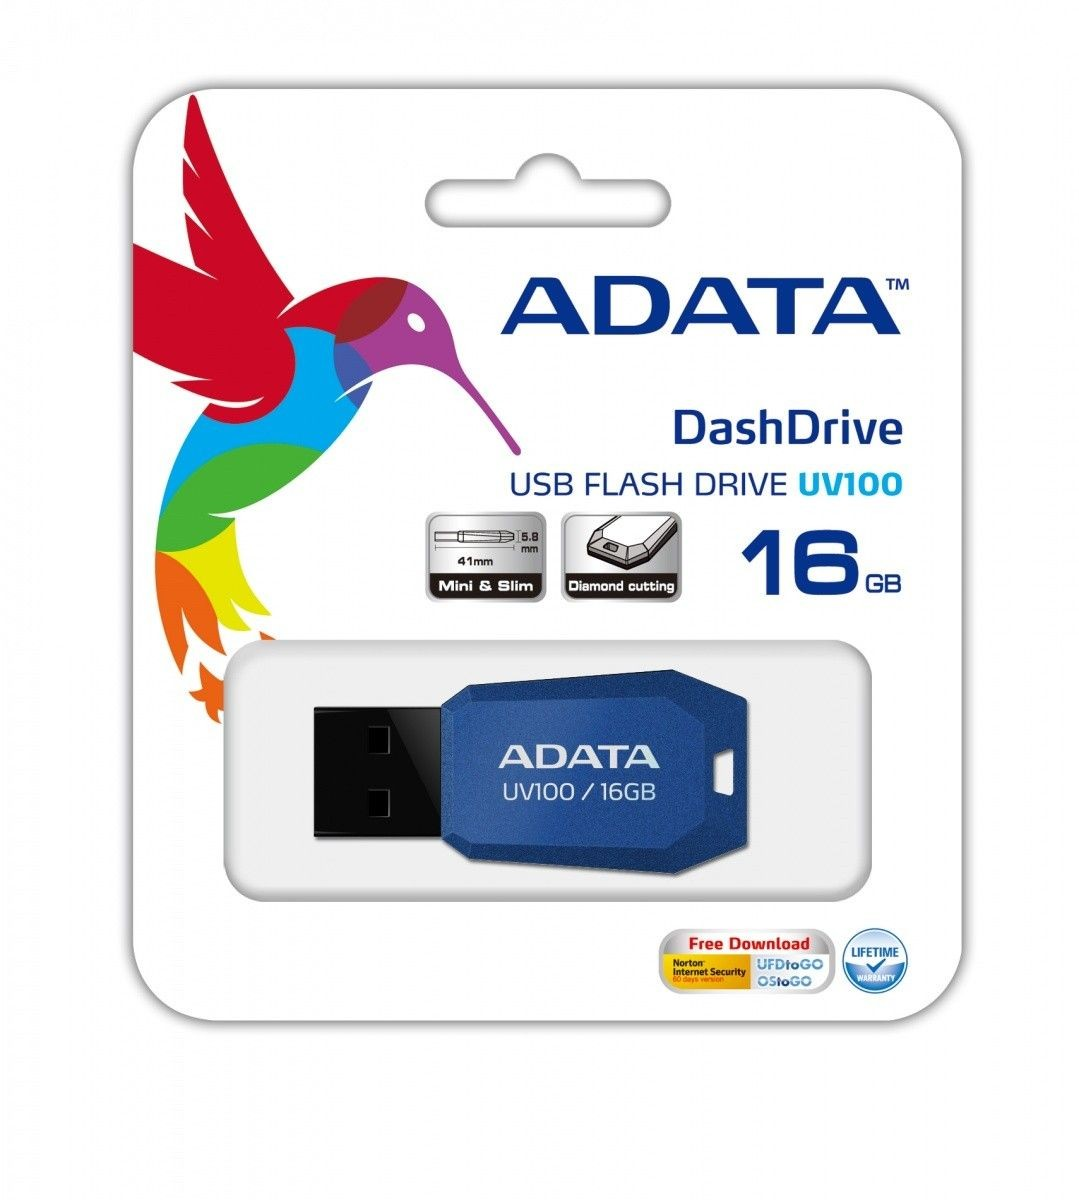 A-Data Adata pamięć USB UV100 16GB USB 2.0 Niebieski